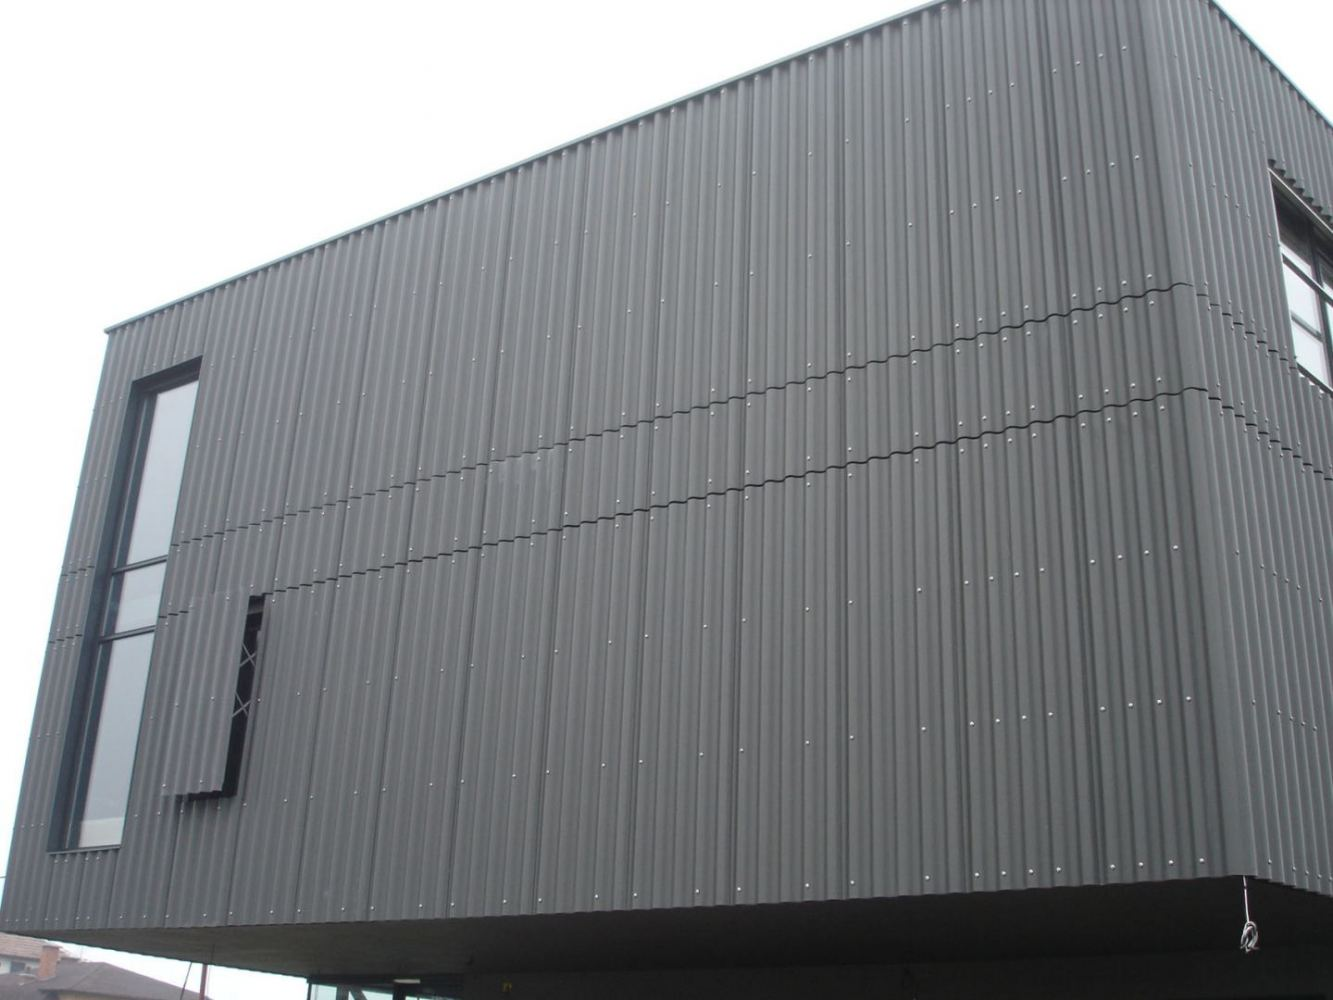 Corrugated Fibre Cement Facades Corel 67